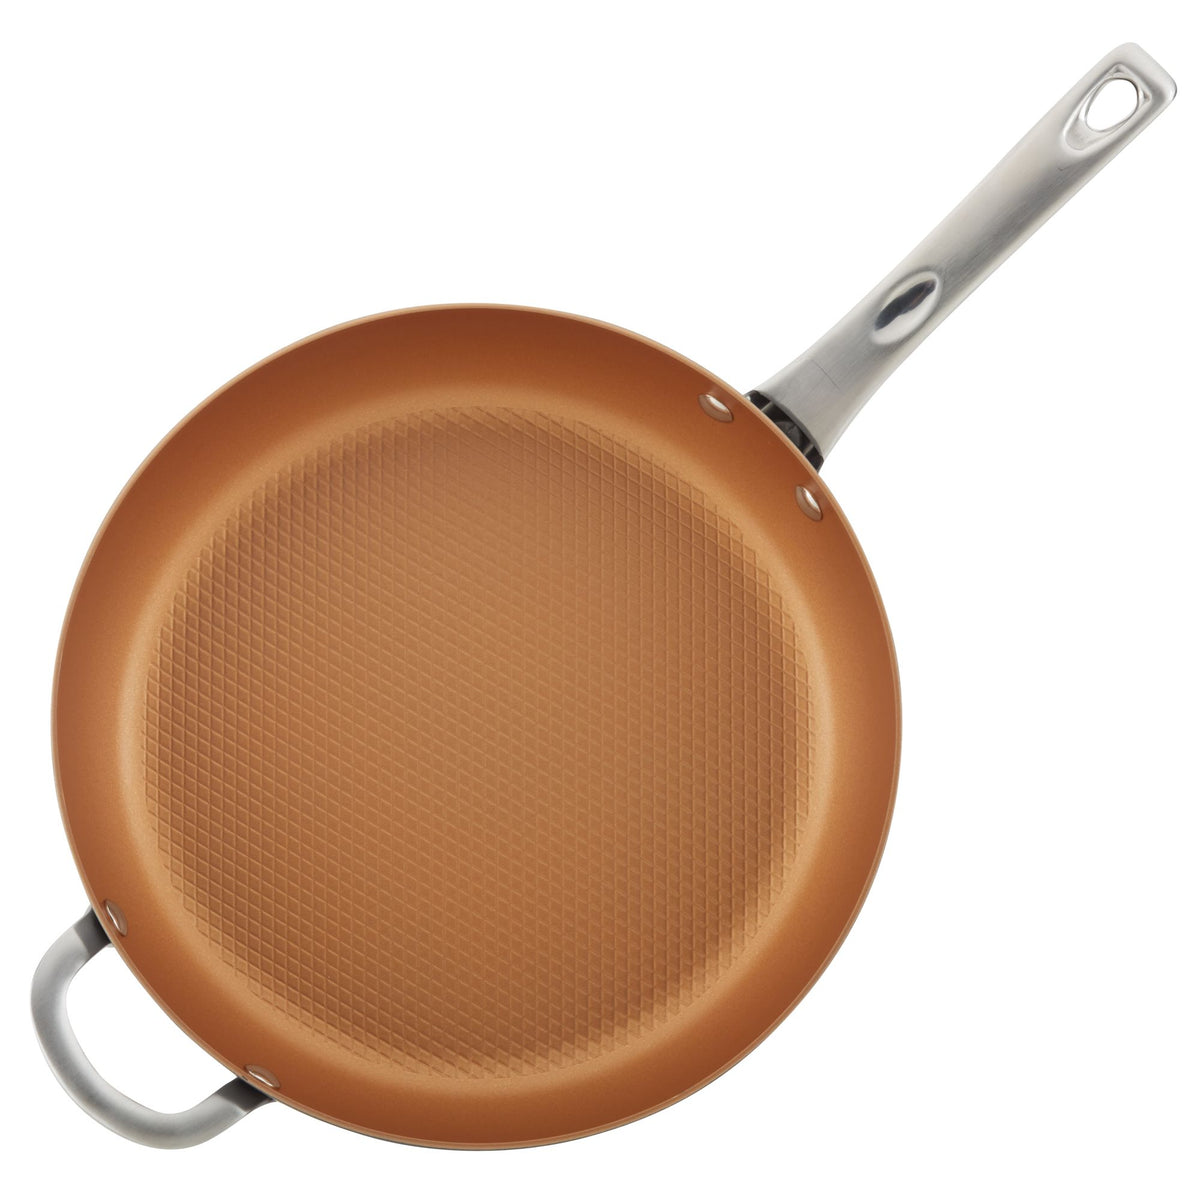 Hard Anodized 12-Inch Nonstick Deep Frying Pan with Helper Handle